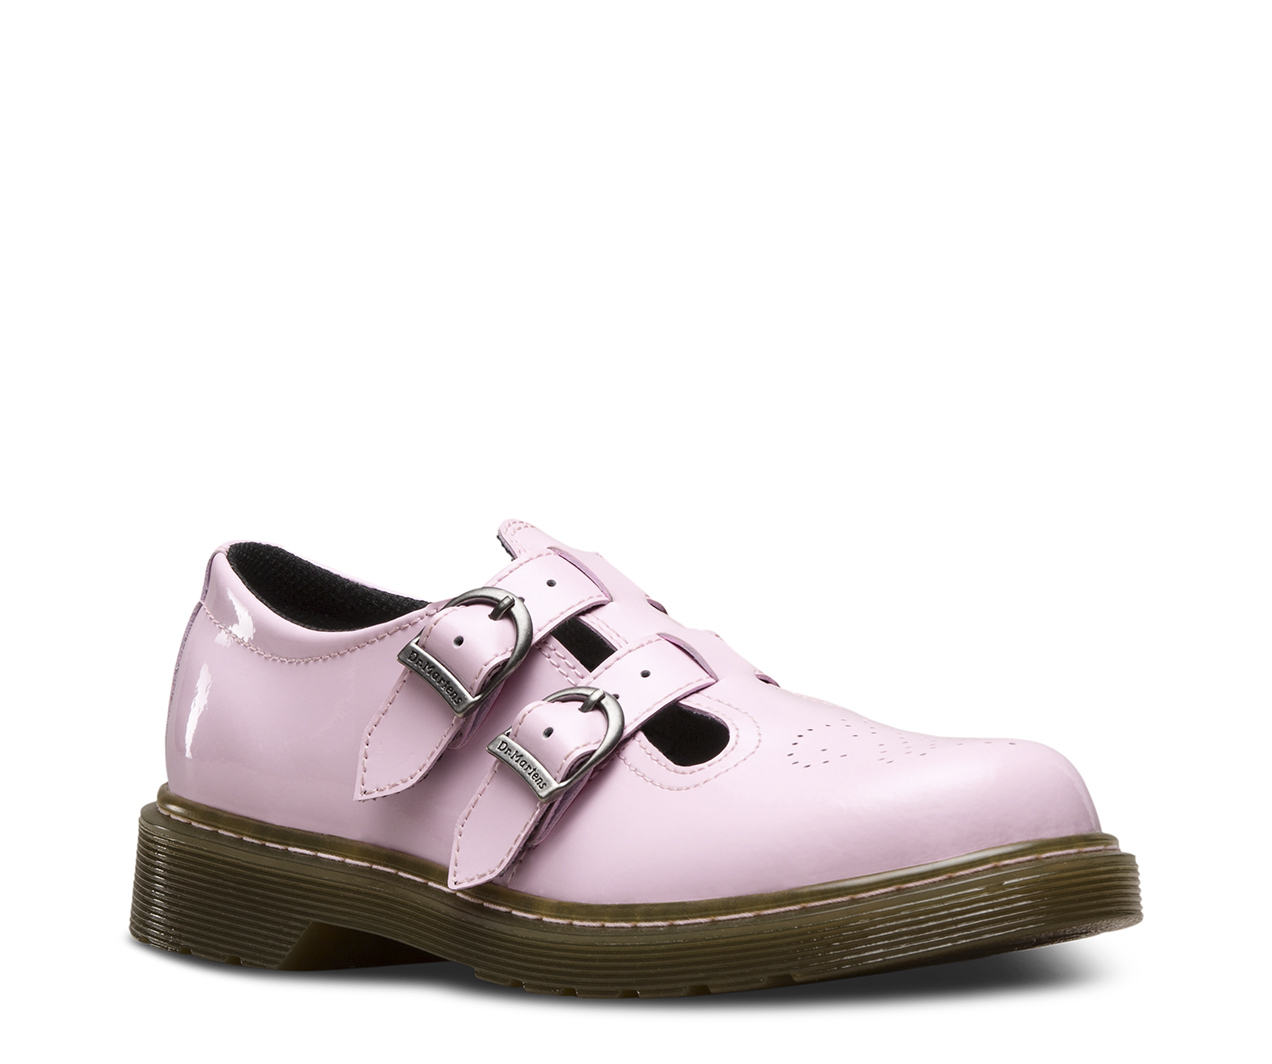 53fadc206 DR MARTENS YOUTH 8065 PATENT